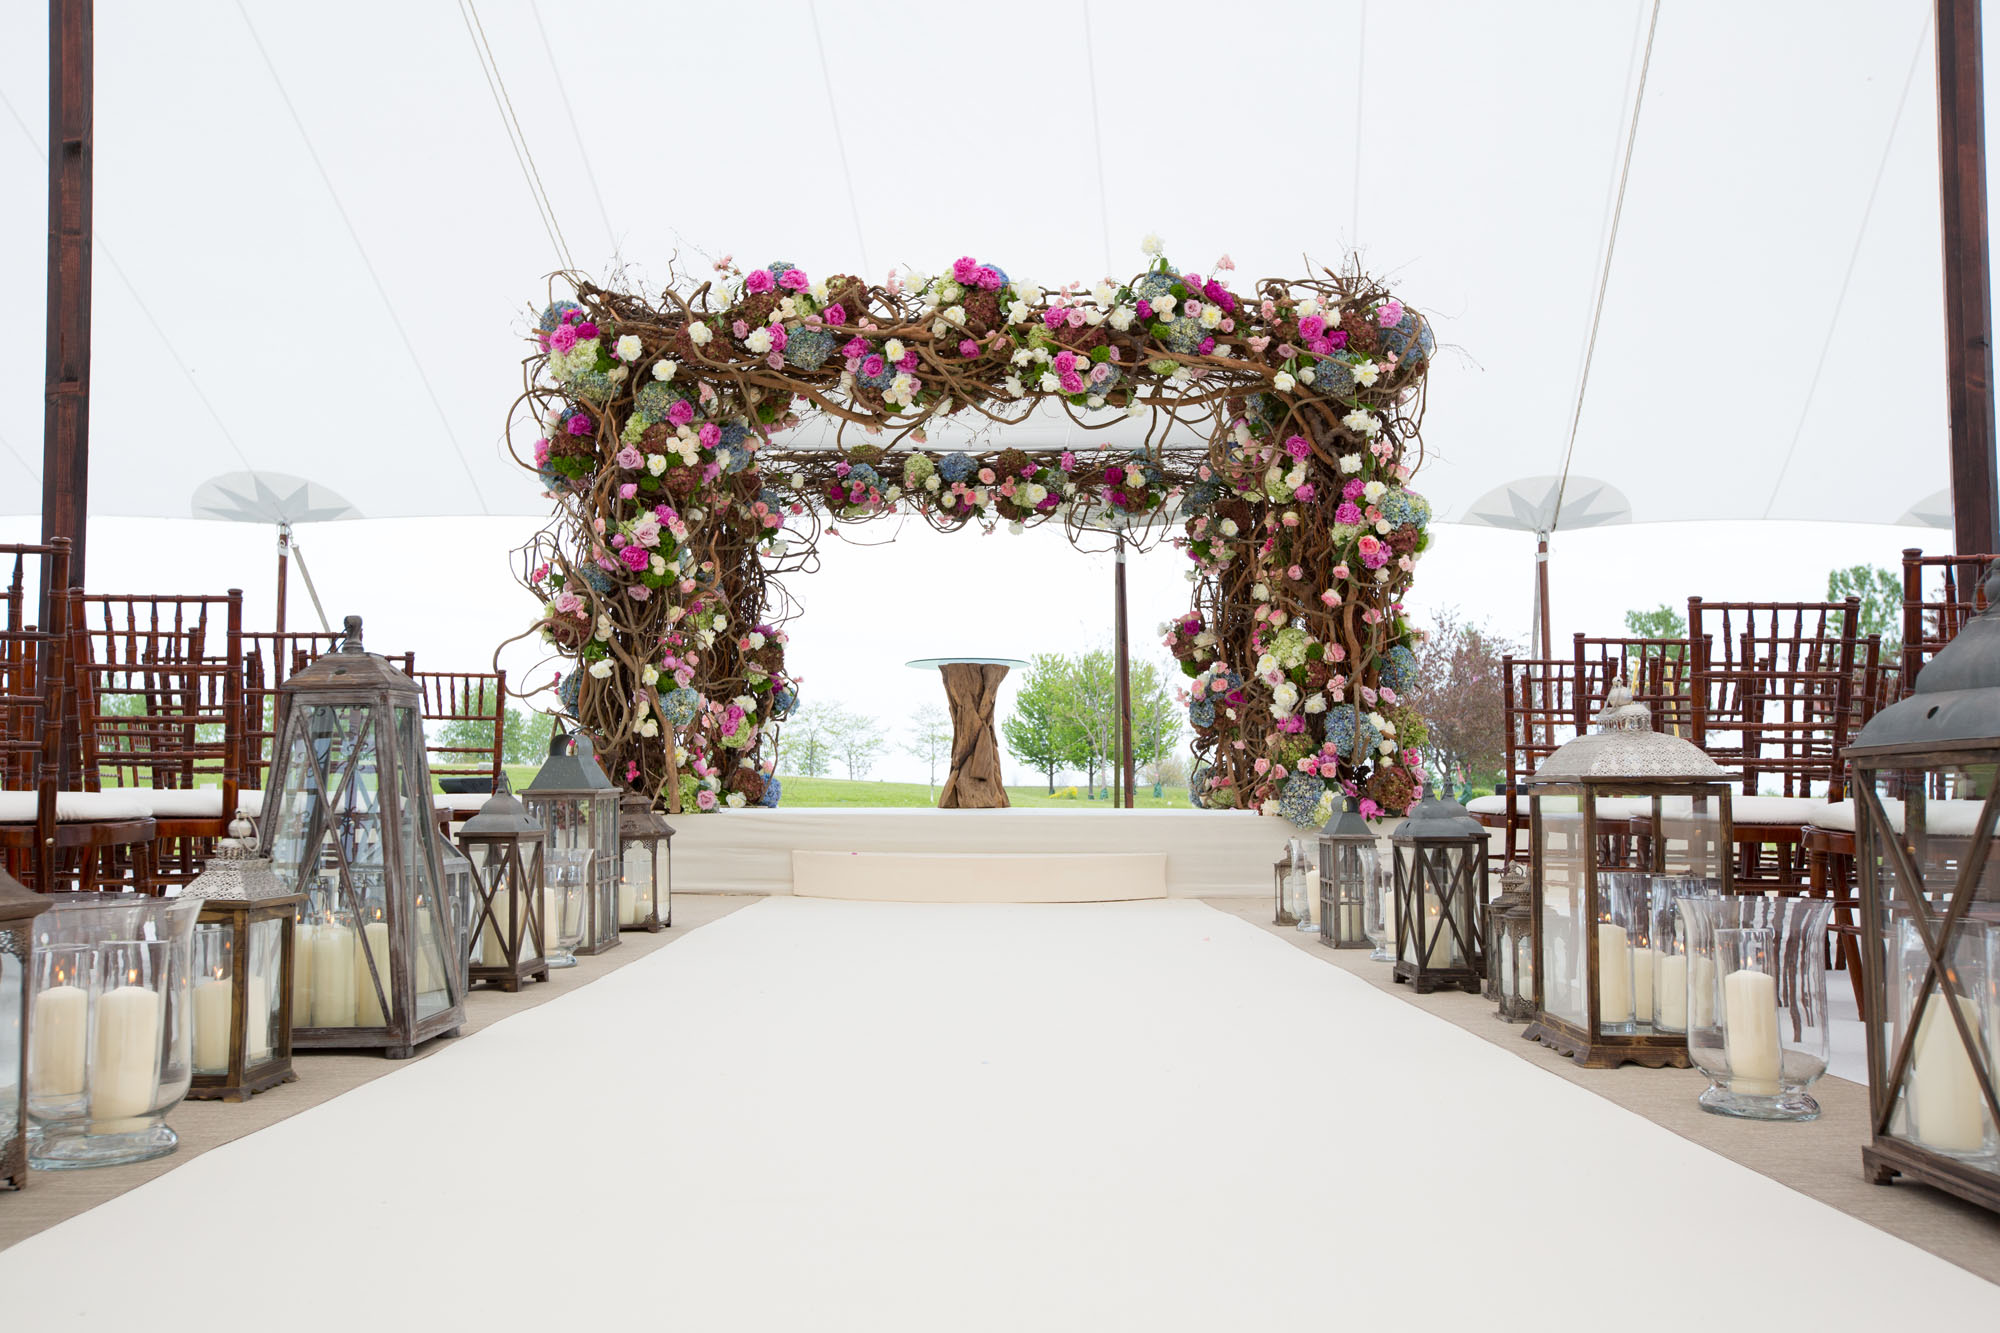 Wedding ideas decorating with lanterns inside weddings flower embellish chuppah with lanterns lining aisle runner junglespirit Gallery